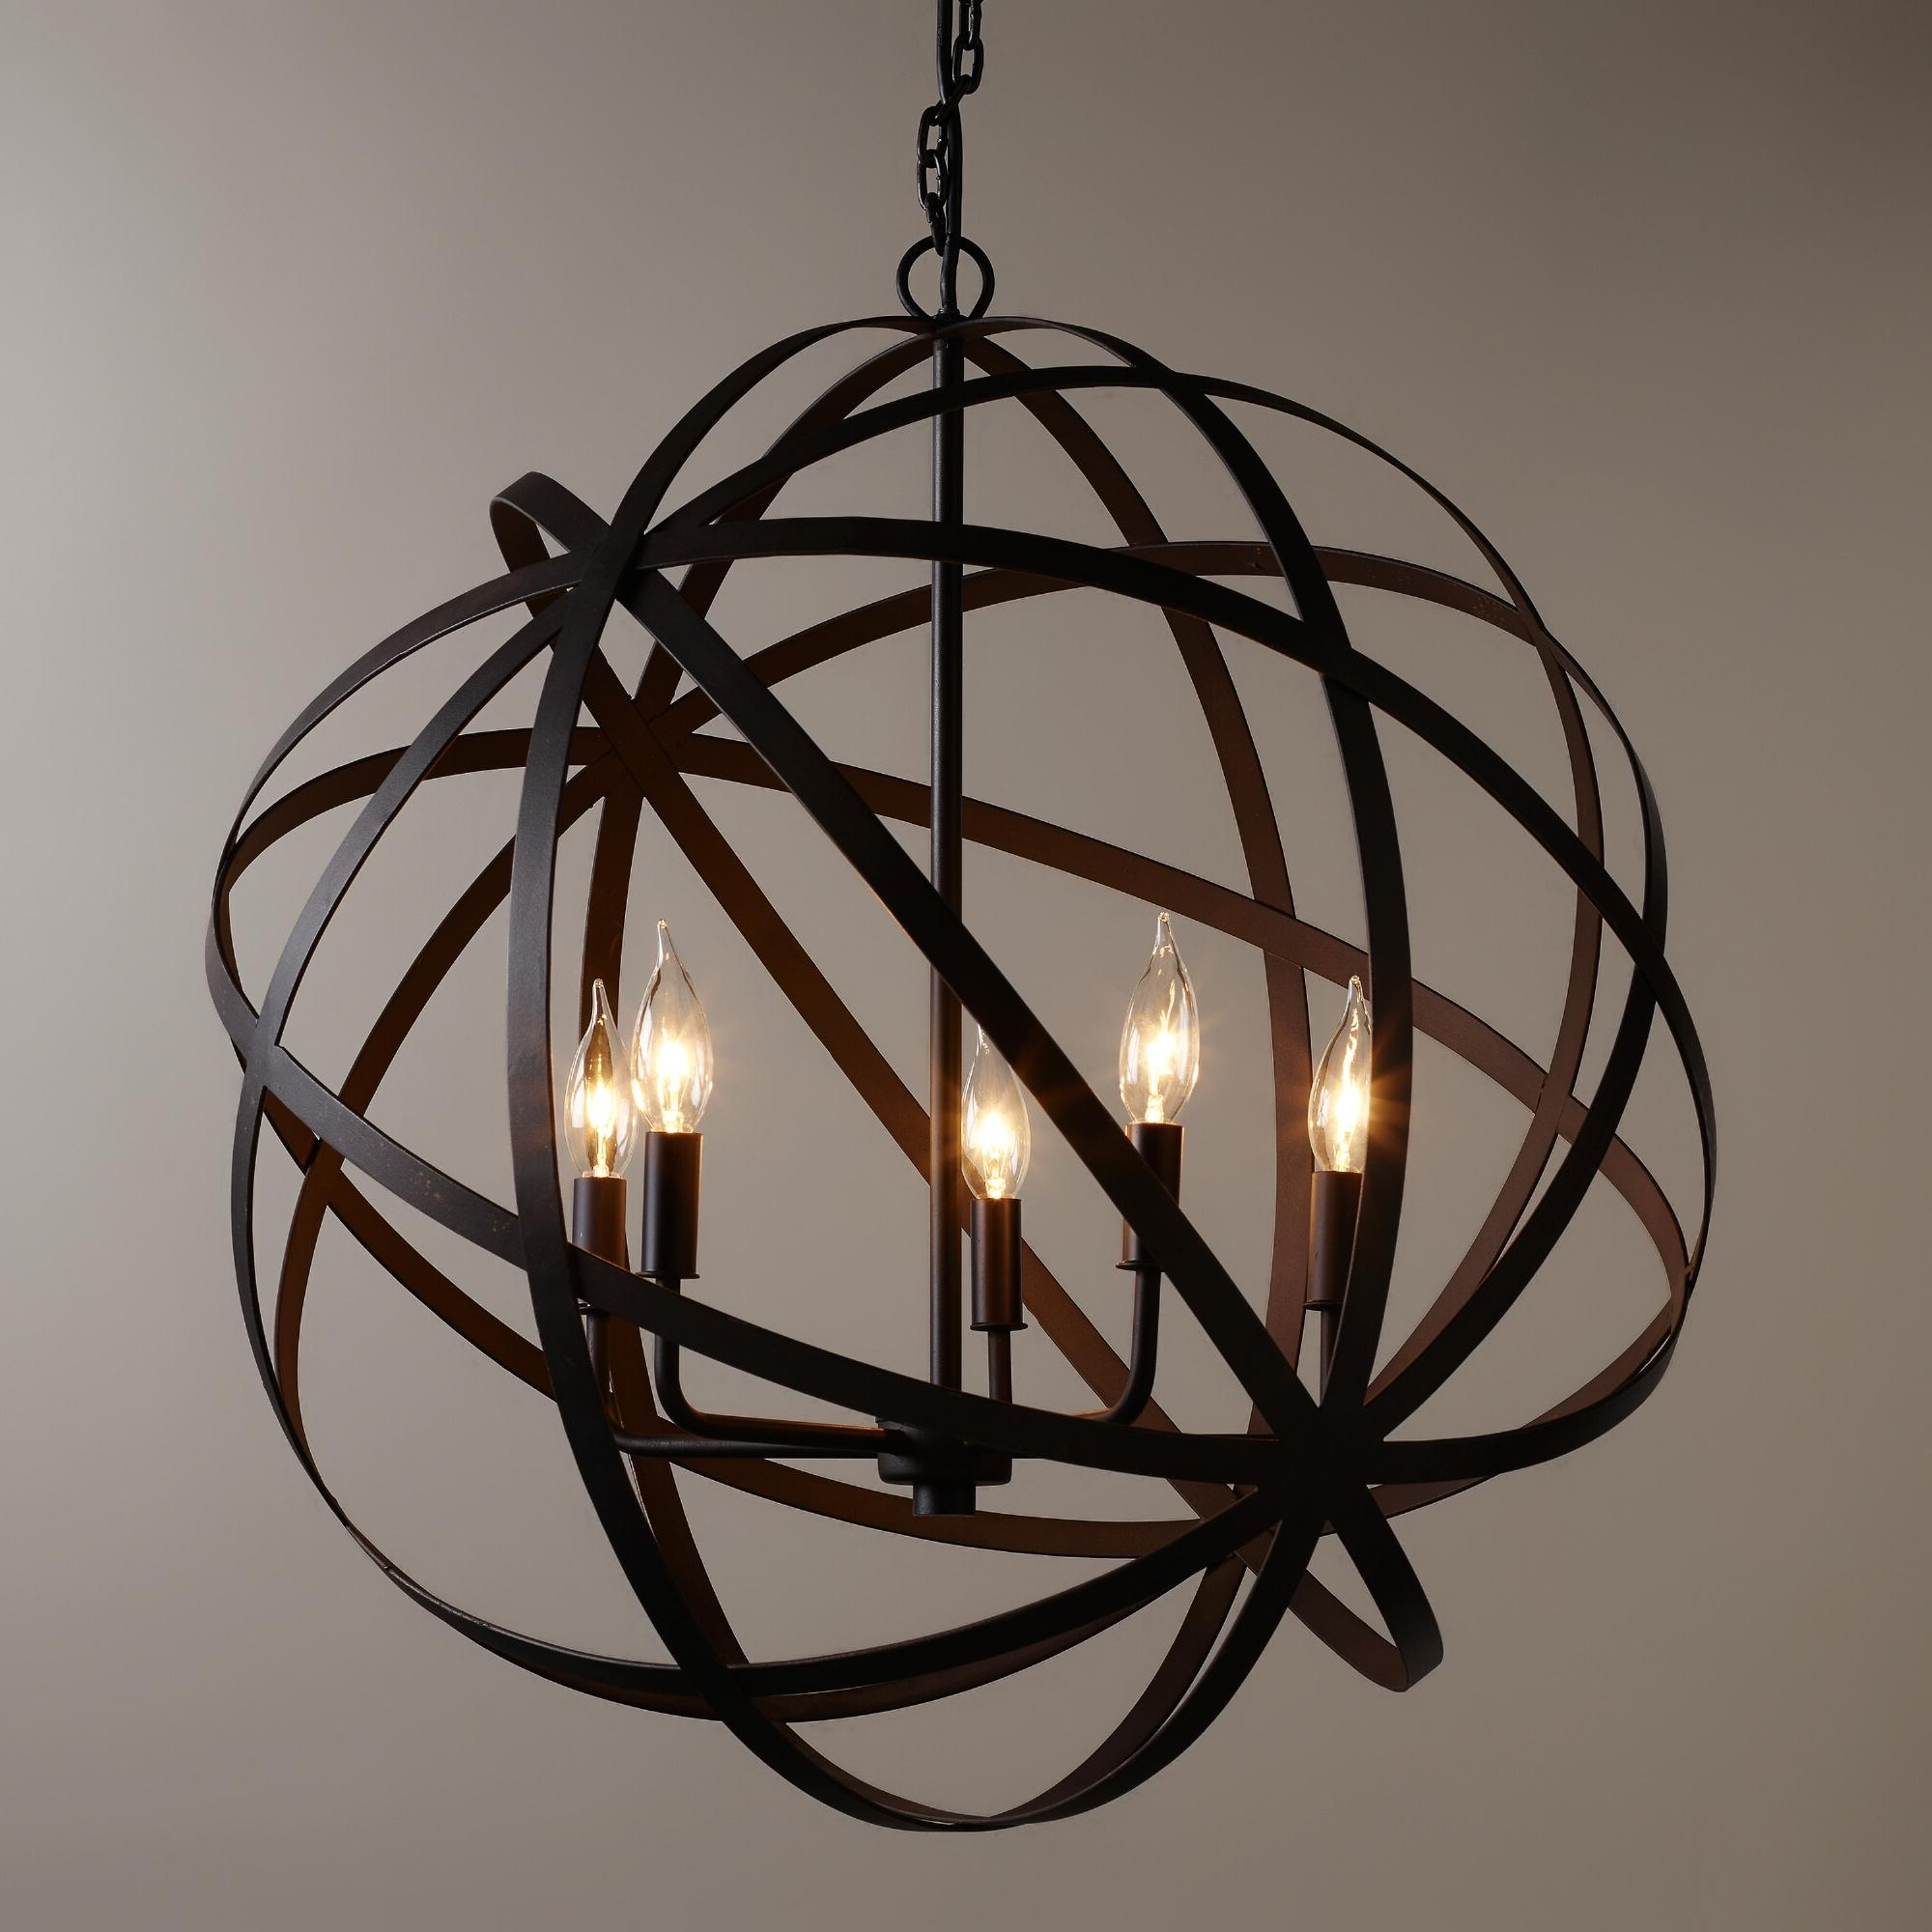 Current Light : Creative Orb Chandelier About Interior Designing Home Ideas Pertaining To Orb Chandelier (View 2 of 15)